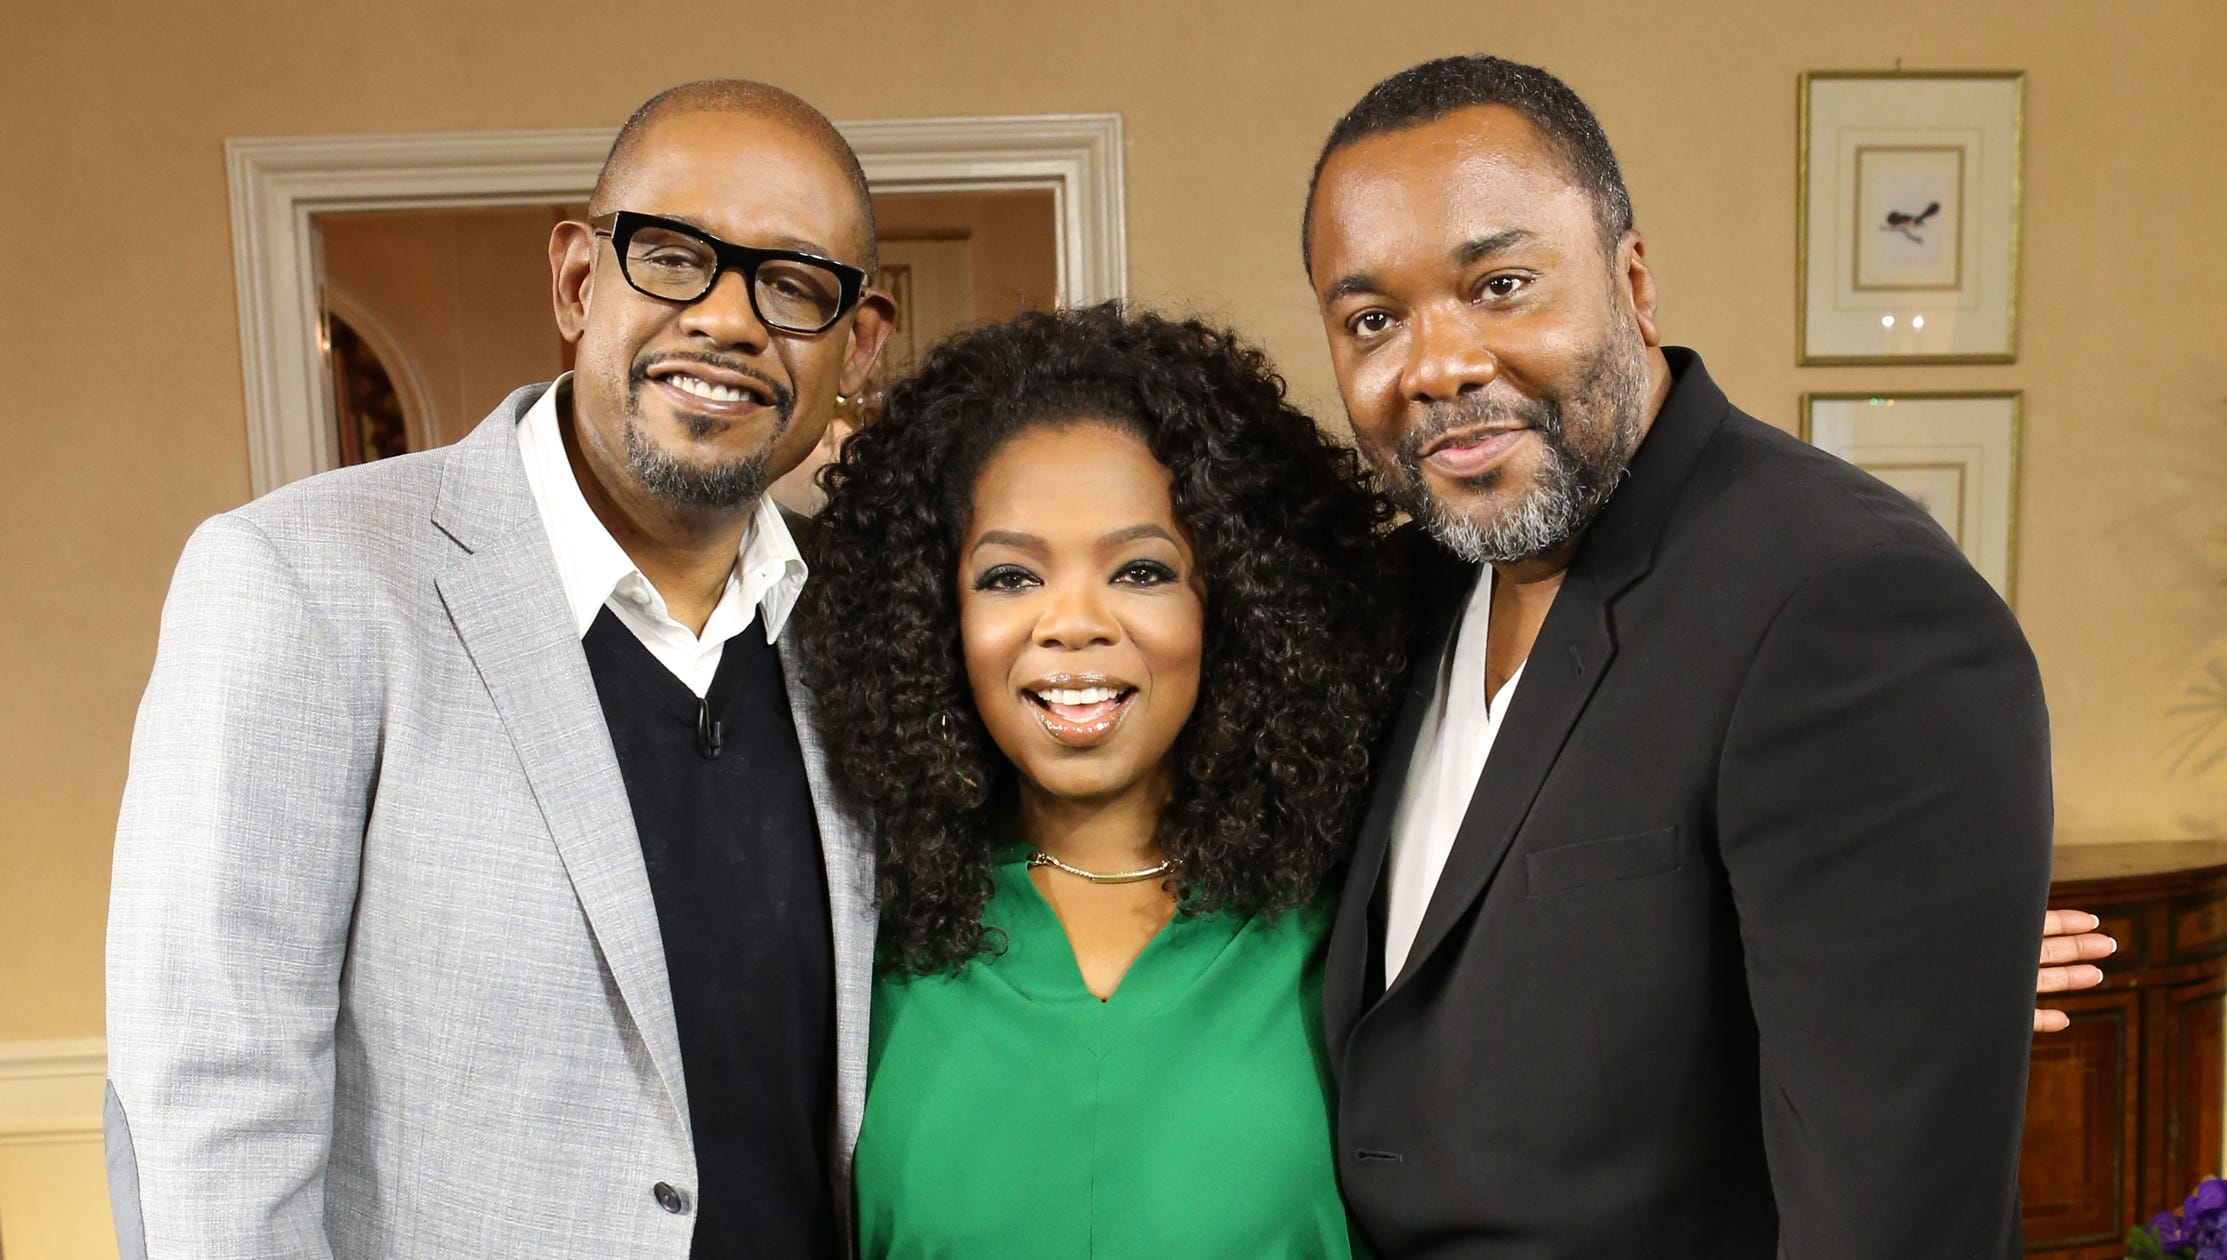 Oprah is casual and chic in lucky green while hanging out with Whitaker and Daniels in NYC on Aug. 1.